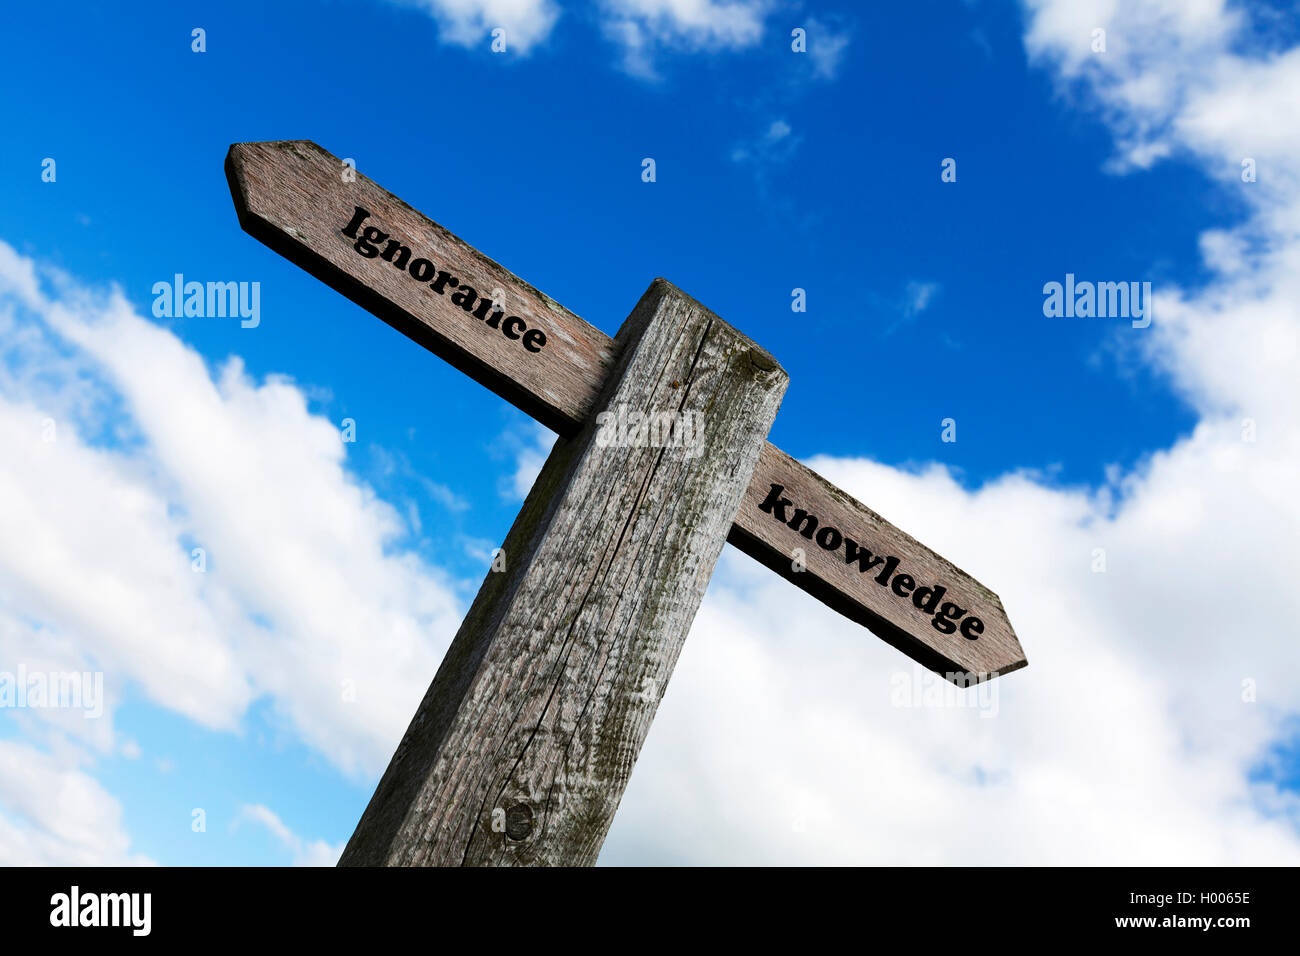 Ignorance knowledge concept sign choice choose life direction thick stupid or clever knowledgeable bright concepts Stock Photo